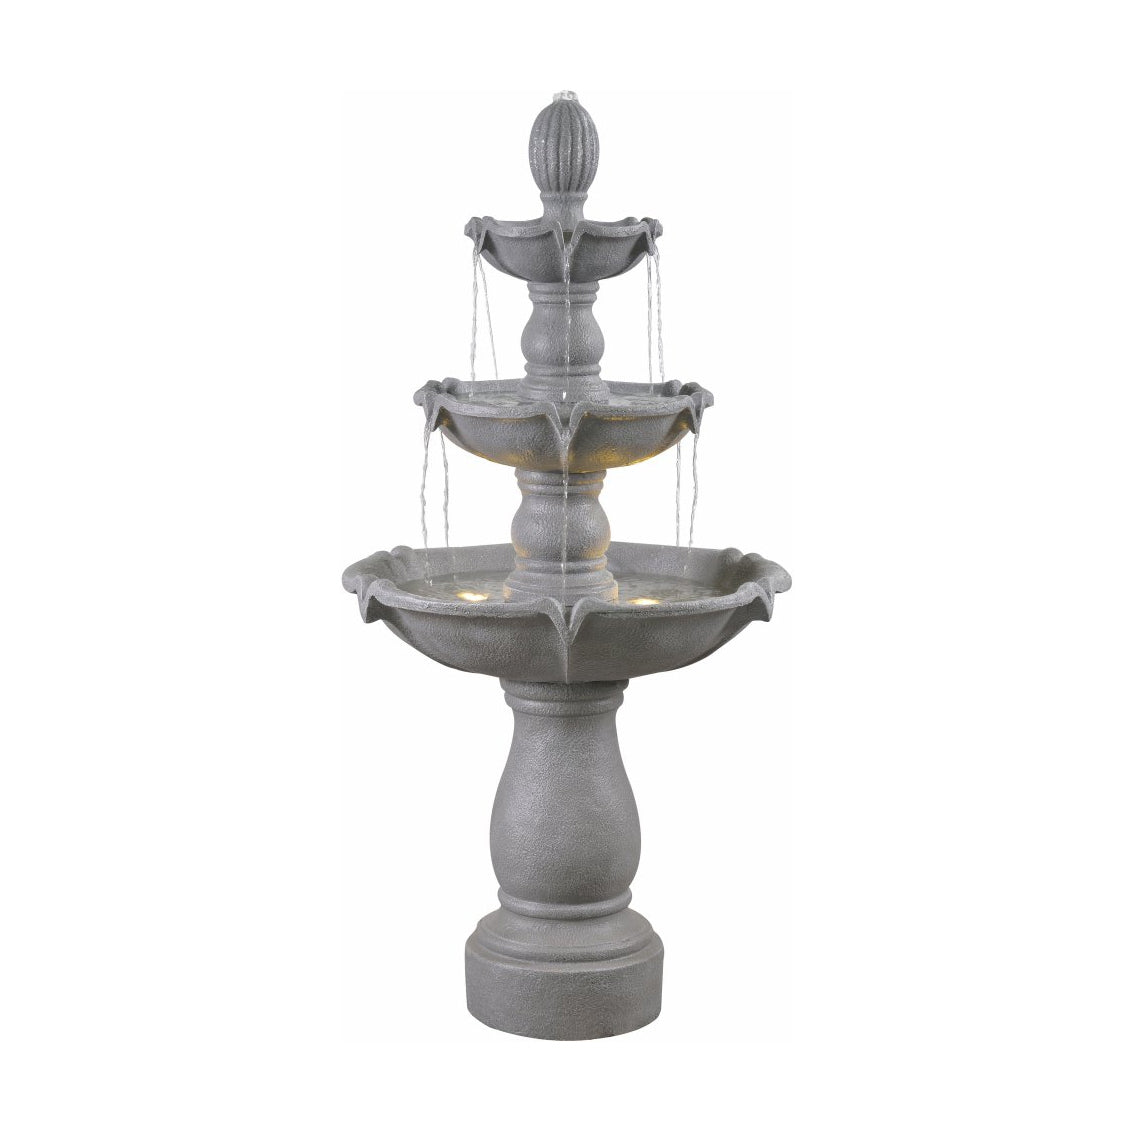 Plantation Outdoor Floor Fountain - Soothing Walls